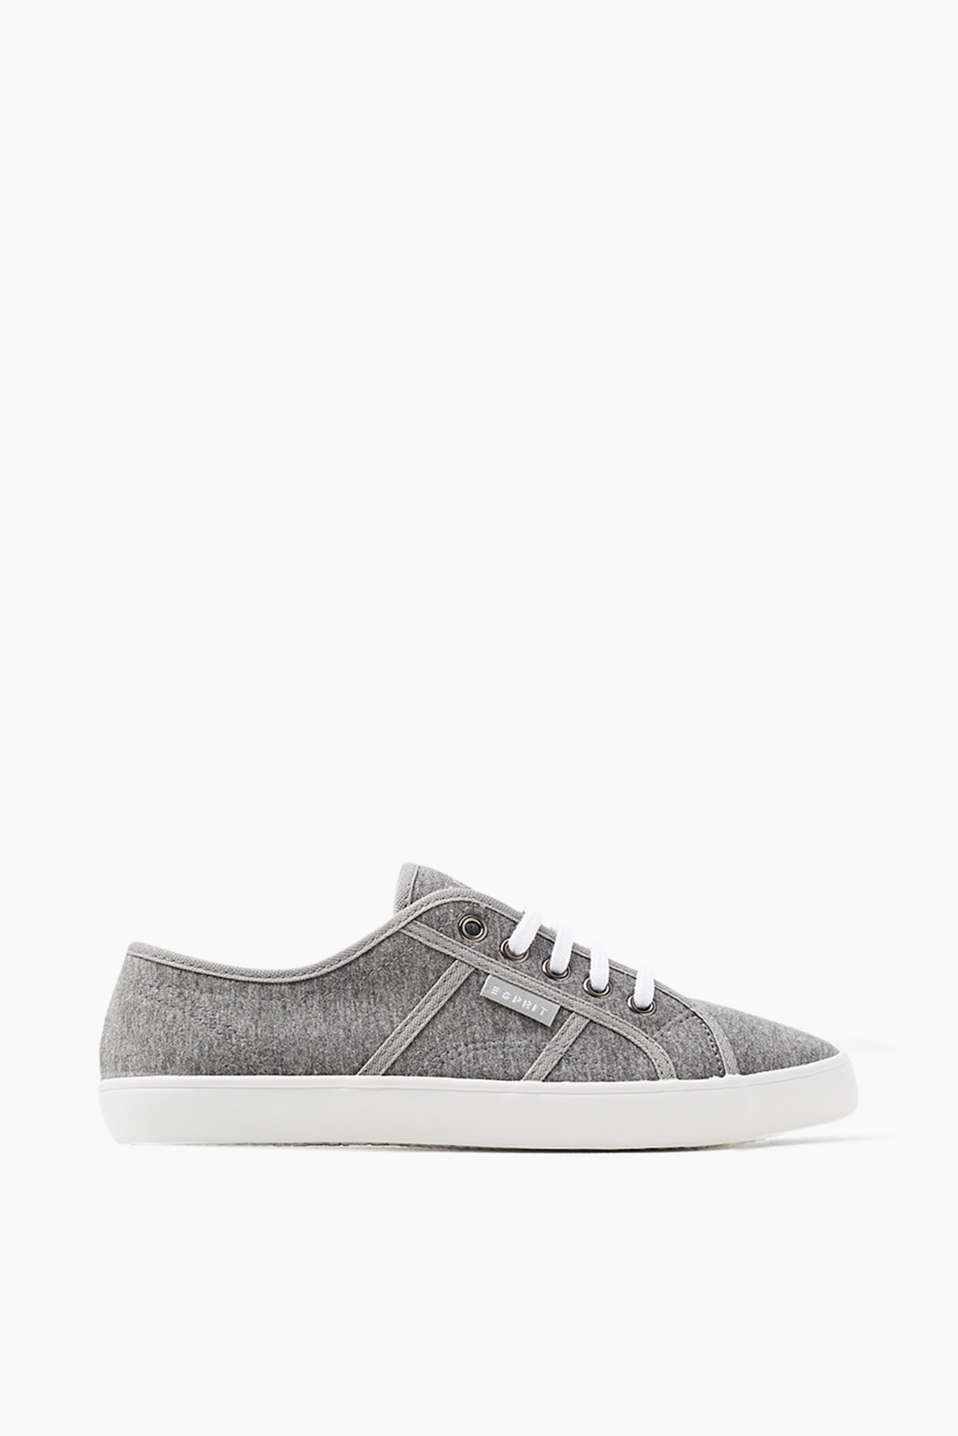 Lace-up trainers in a slim design